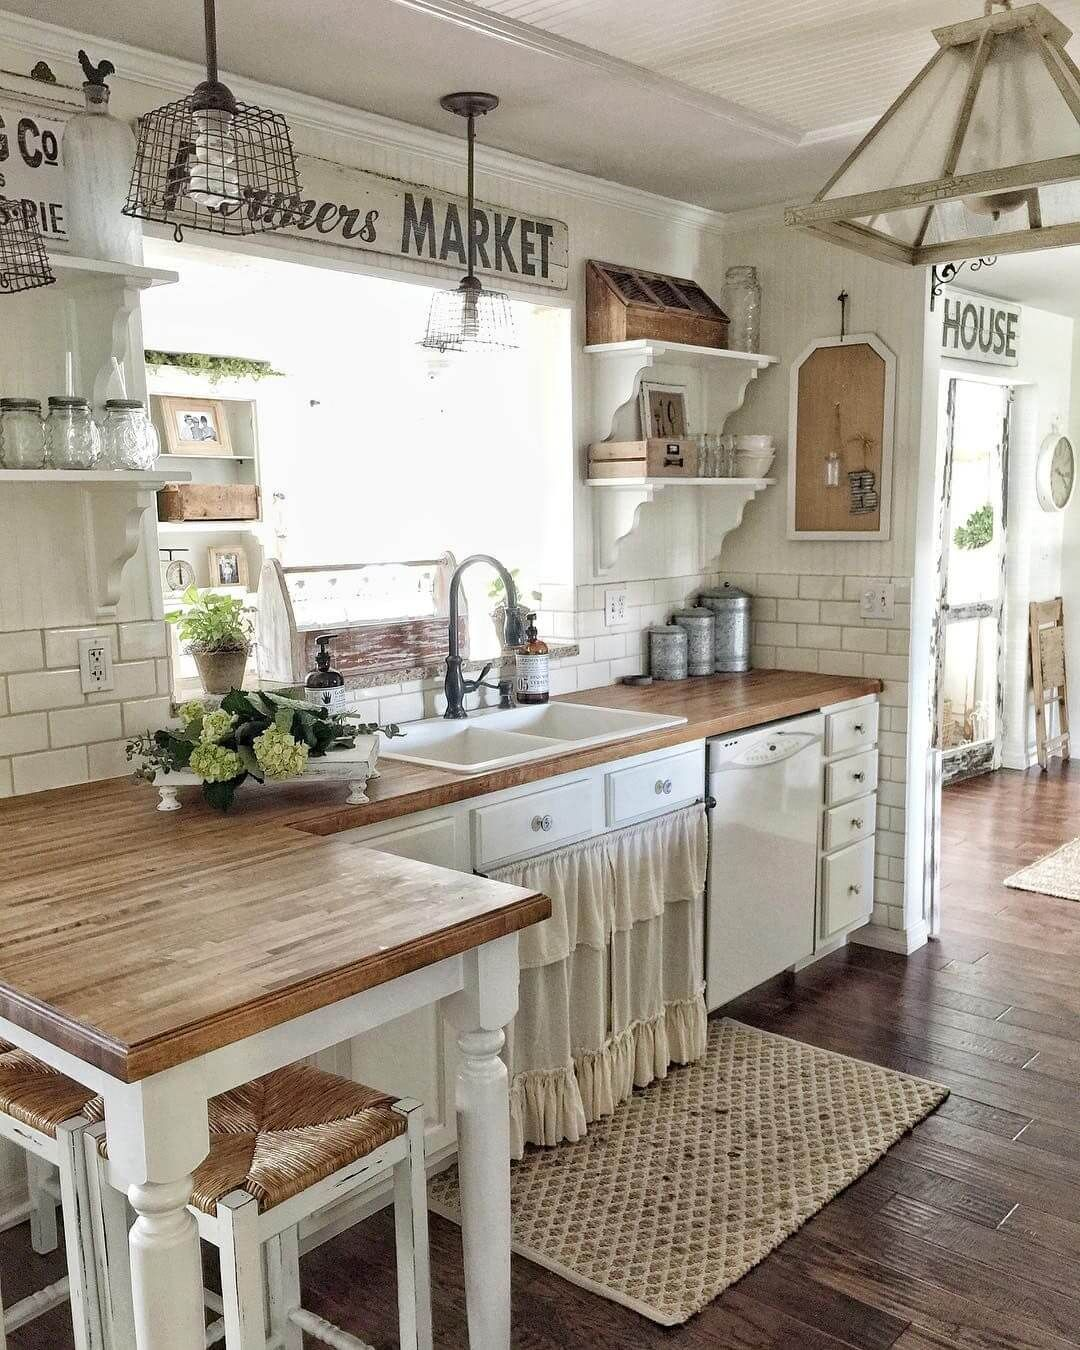 Farmhouse Kitchen Cabinets Chair Pads With Ties 35 Cabinet Ideas To Create A Warm And Welcoming Lightly Rustic Off White